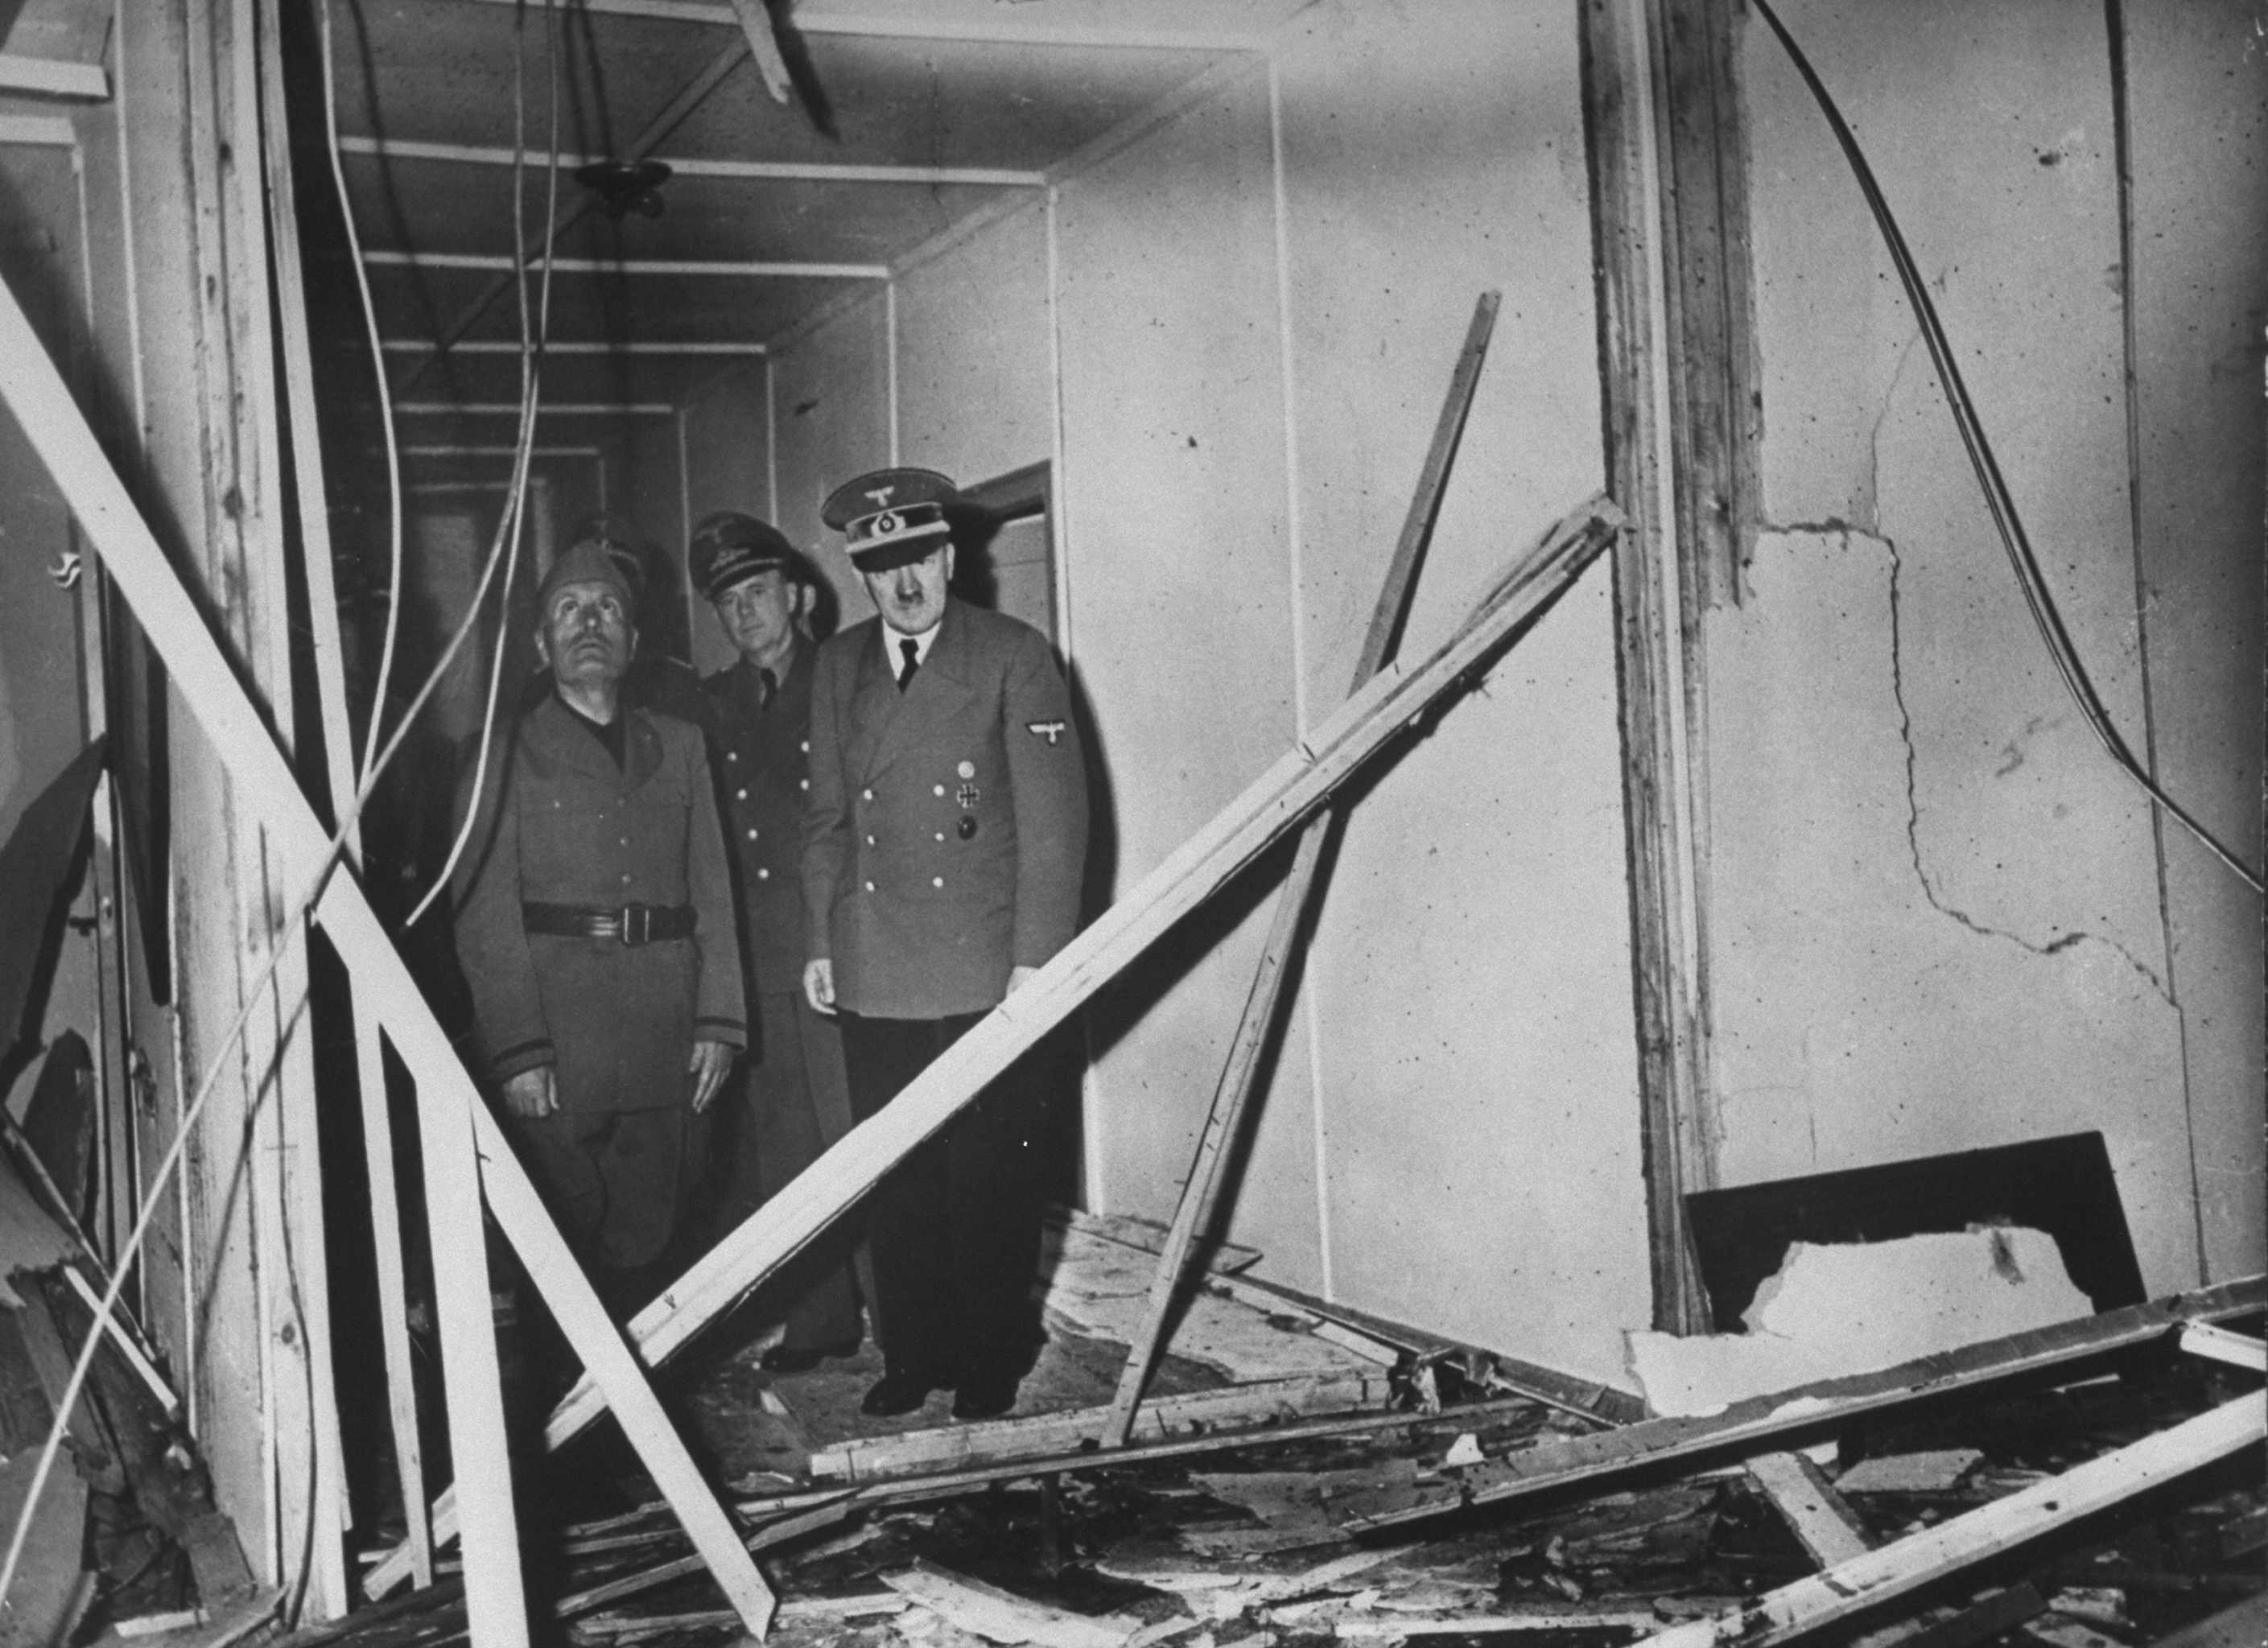 Deposed Italian dictator Benito Mussolini, German officer Paul Schmidt and Adolf Hitler survey damage at Hitler's eastern front military headquarters, 'the Wolf's Lair', hours after a failed bombing attempt by Lieutenant Colonel Claus von Stauffenberg. (Photo by Heinrich Hoffmann/The LIFE Picture Collection/Getty Images)